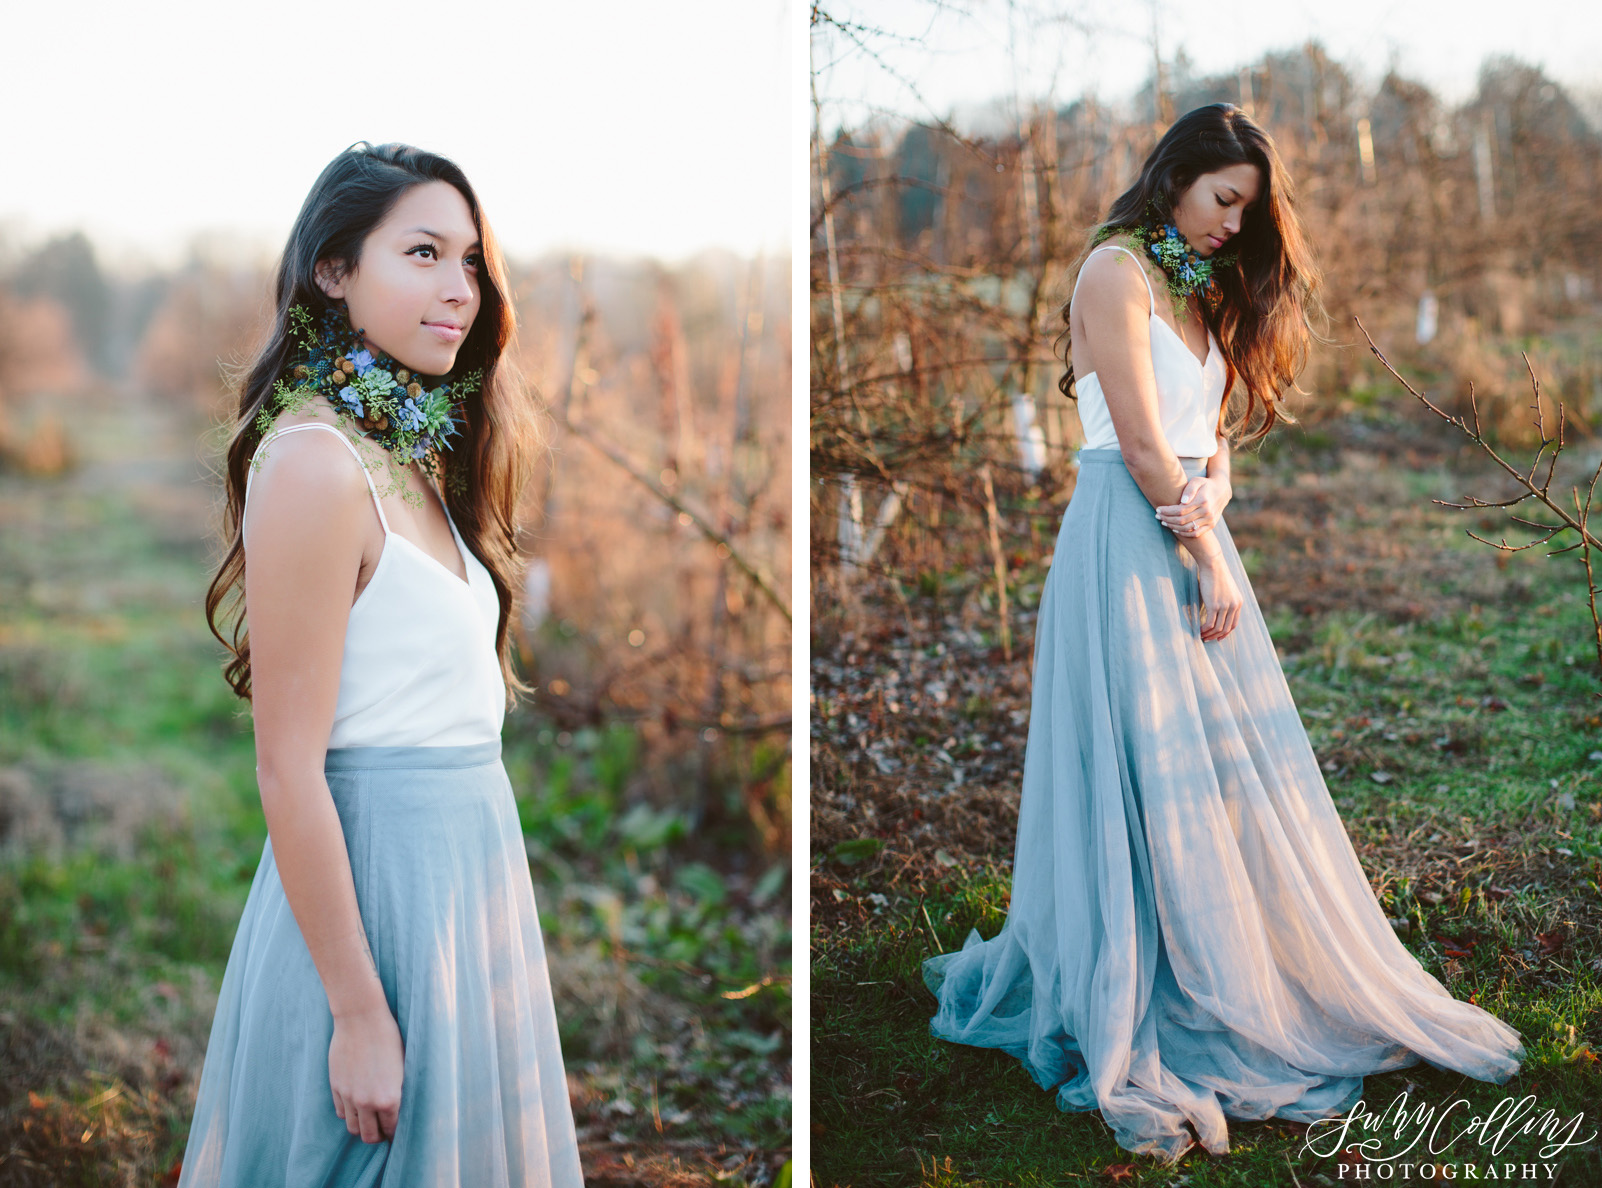 poses, outdoor, styled shoot, intimate, florals, vibrant, dark and moody, sunset, love, details, passion, Knoxville, tennessee, vibrant, colorful, editorial, publication, fun, unique